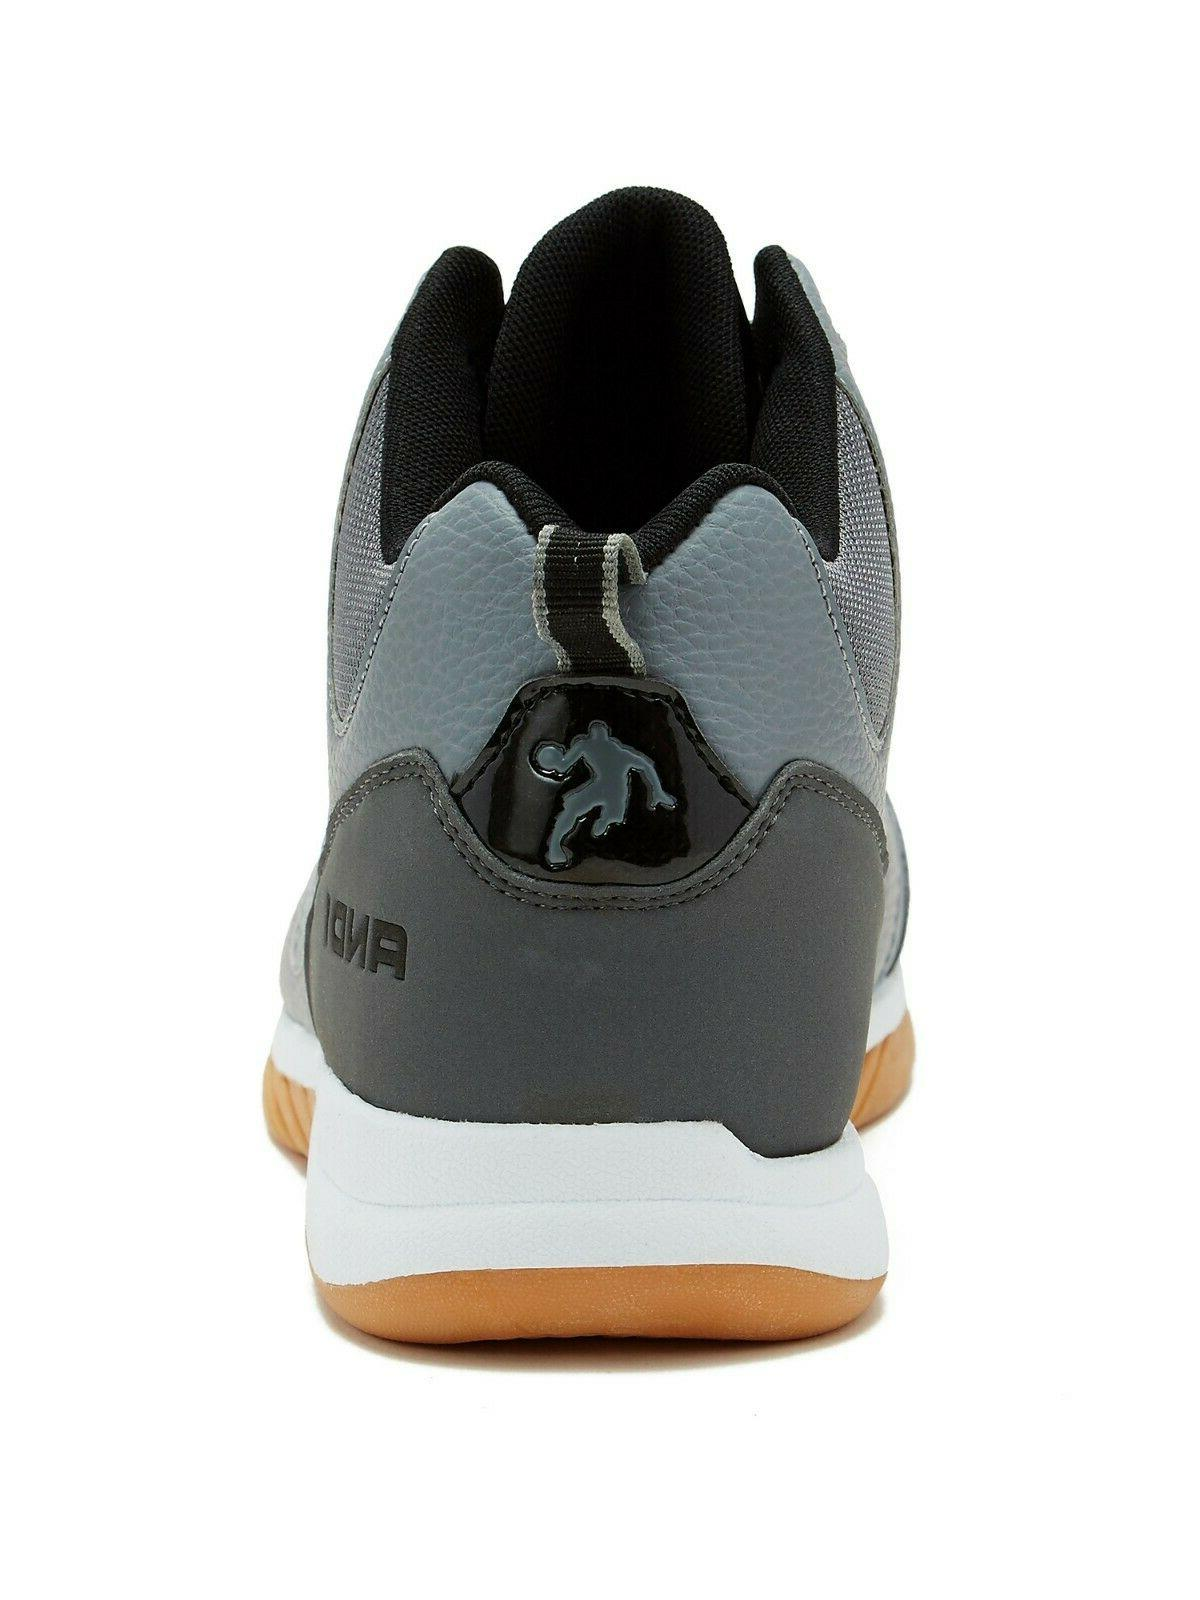 AND1 Athletic Basketball Shoe 10.5,